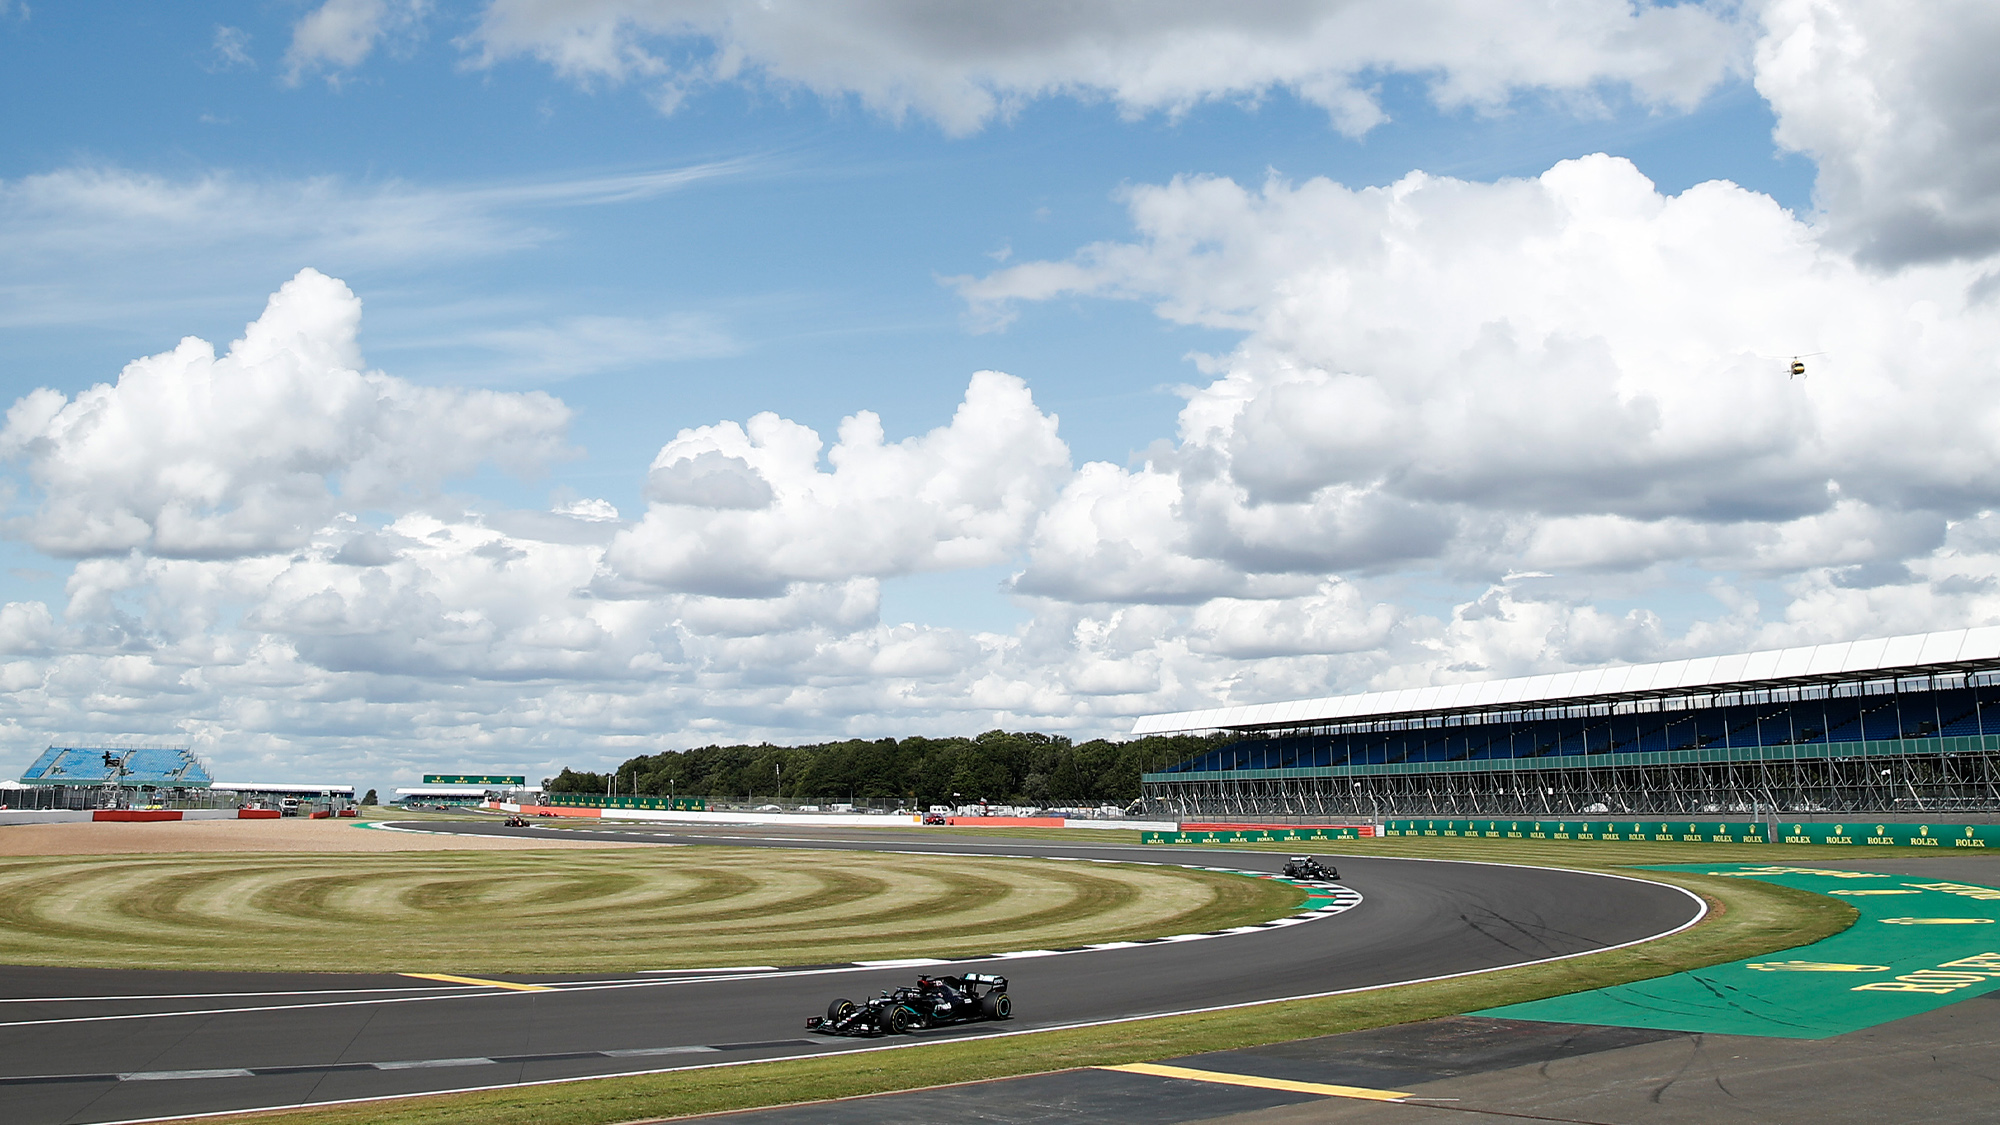 Lewis Hamilton drives through the Maggotts Becketts and Chapel complex at Silverstone during the 2020 F1 British Grand Prix